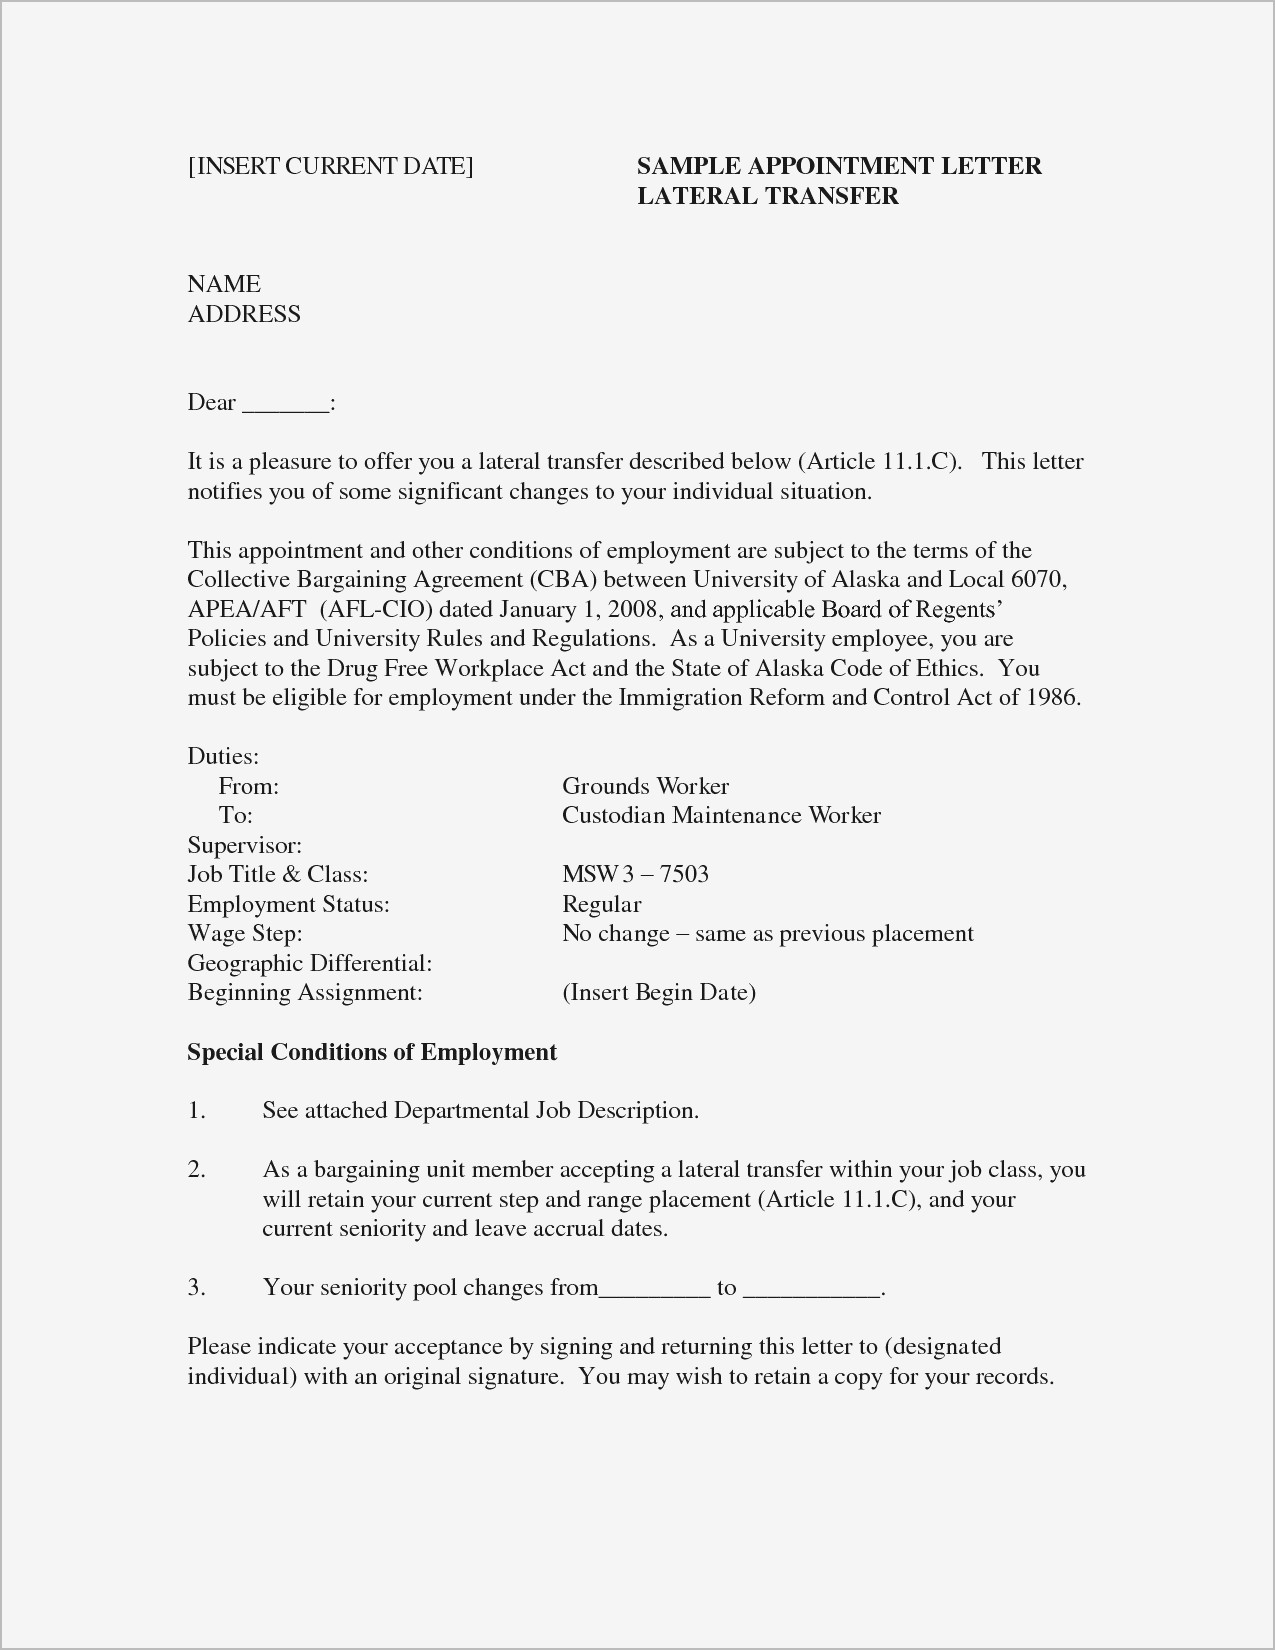 Motivation Letter Template Doc - Simple Job Cover Letter Examples Luxury Simple Cover Letter Samples